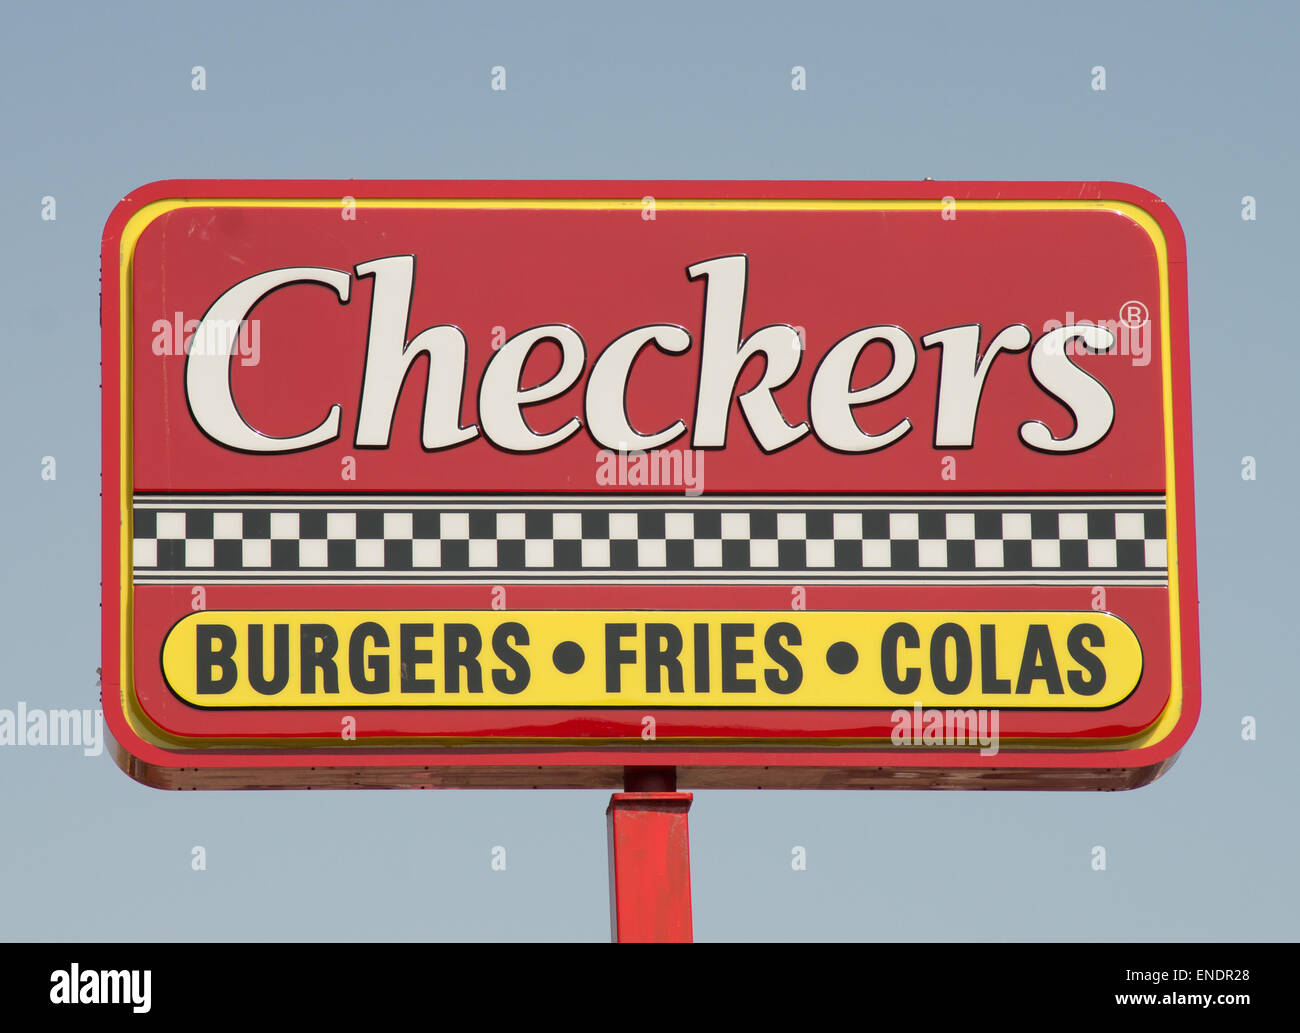 Checkers fast food drive in sign or notice, Brooklyn, NYC, USA Stock Photo